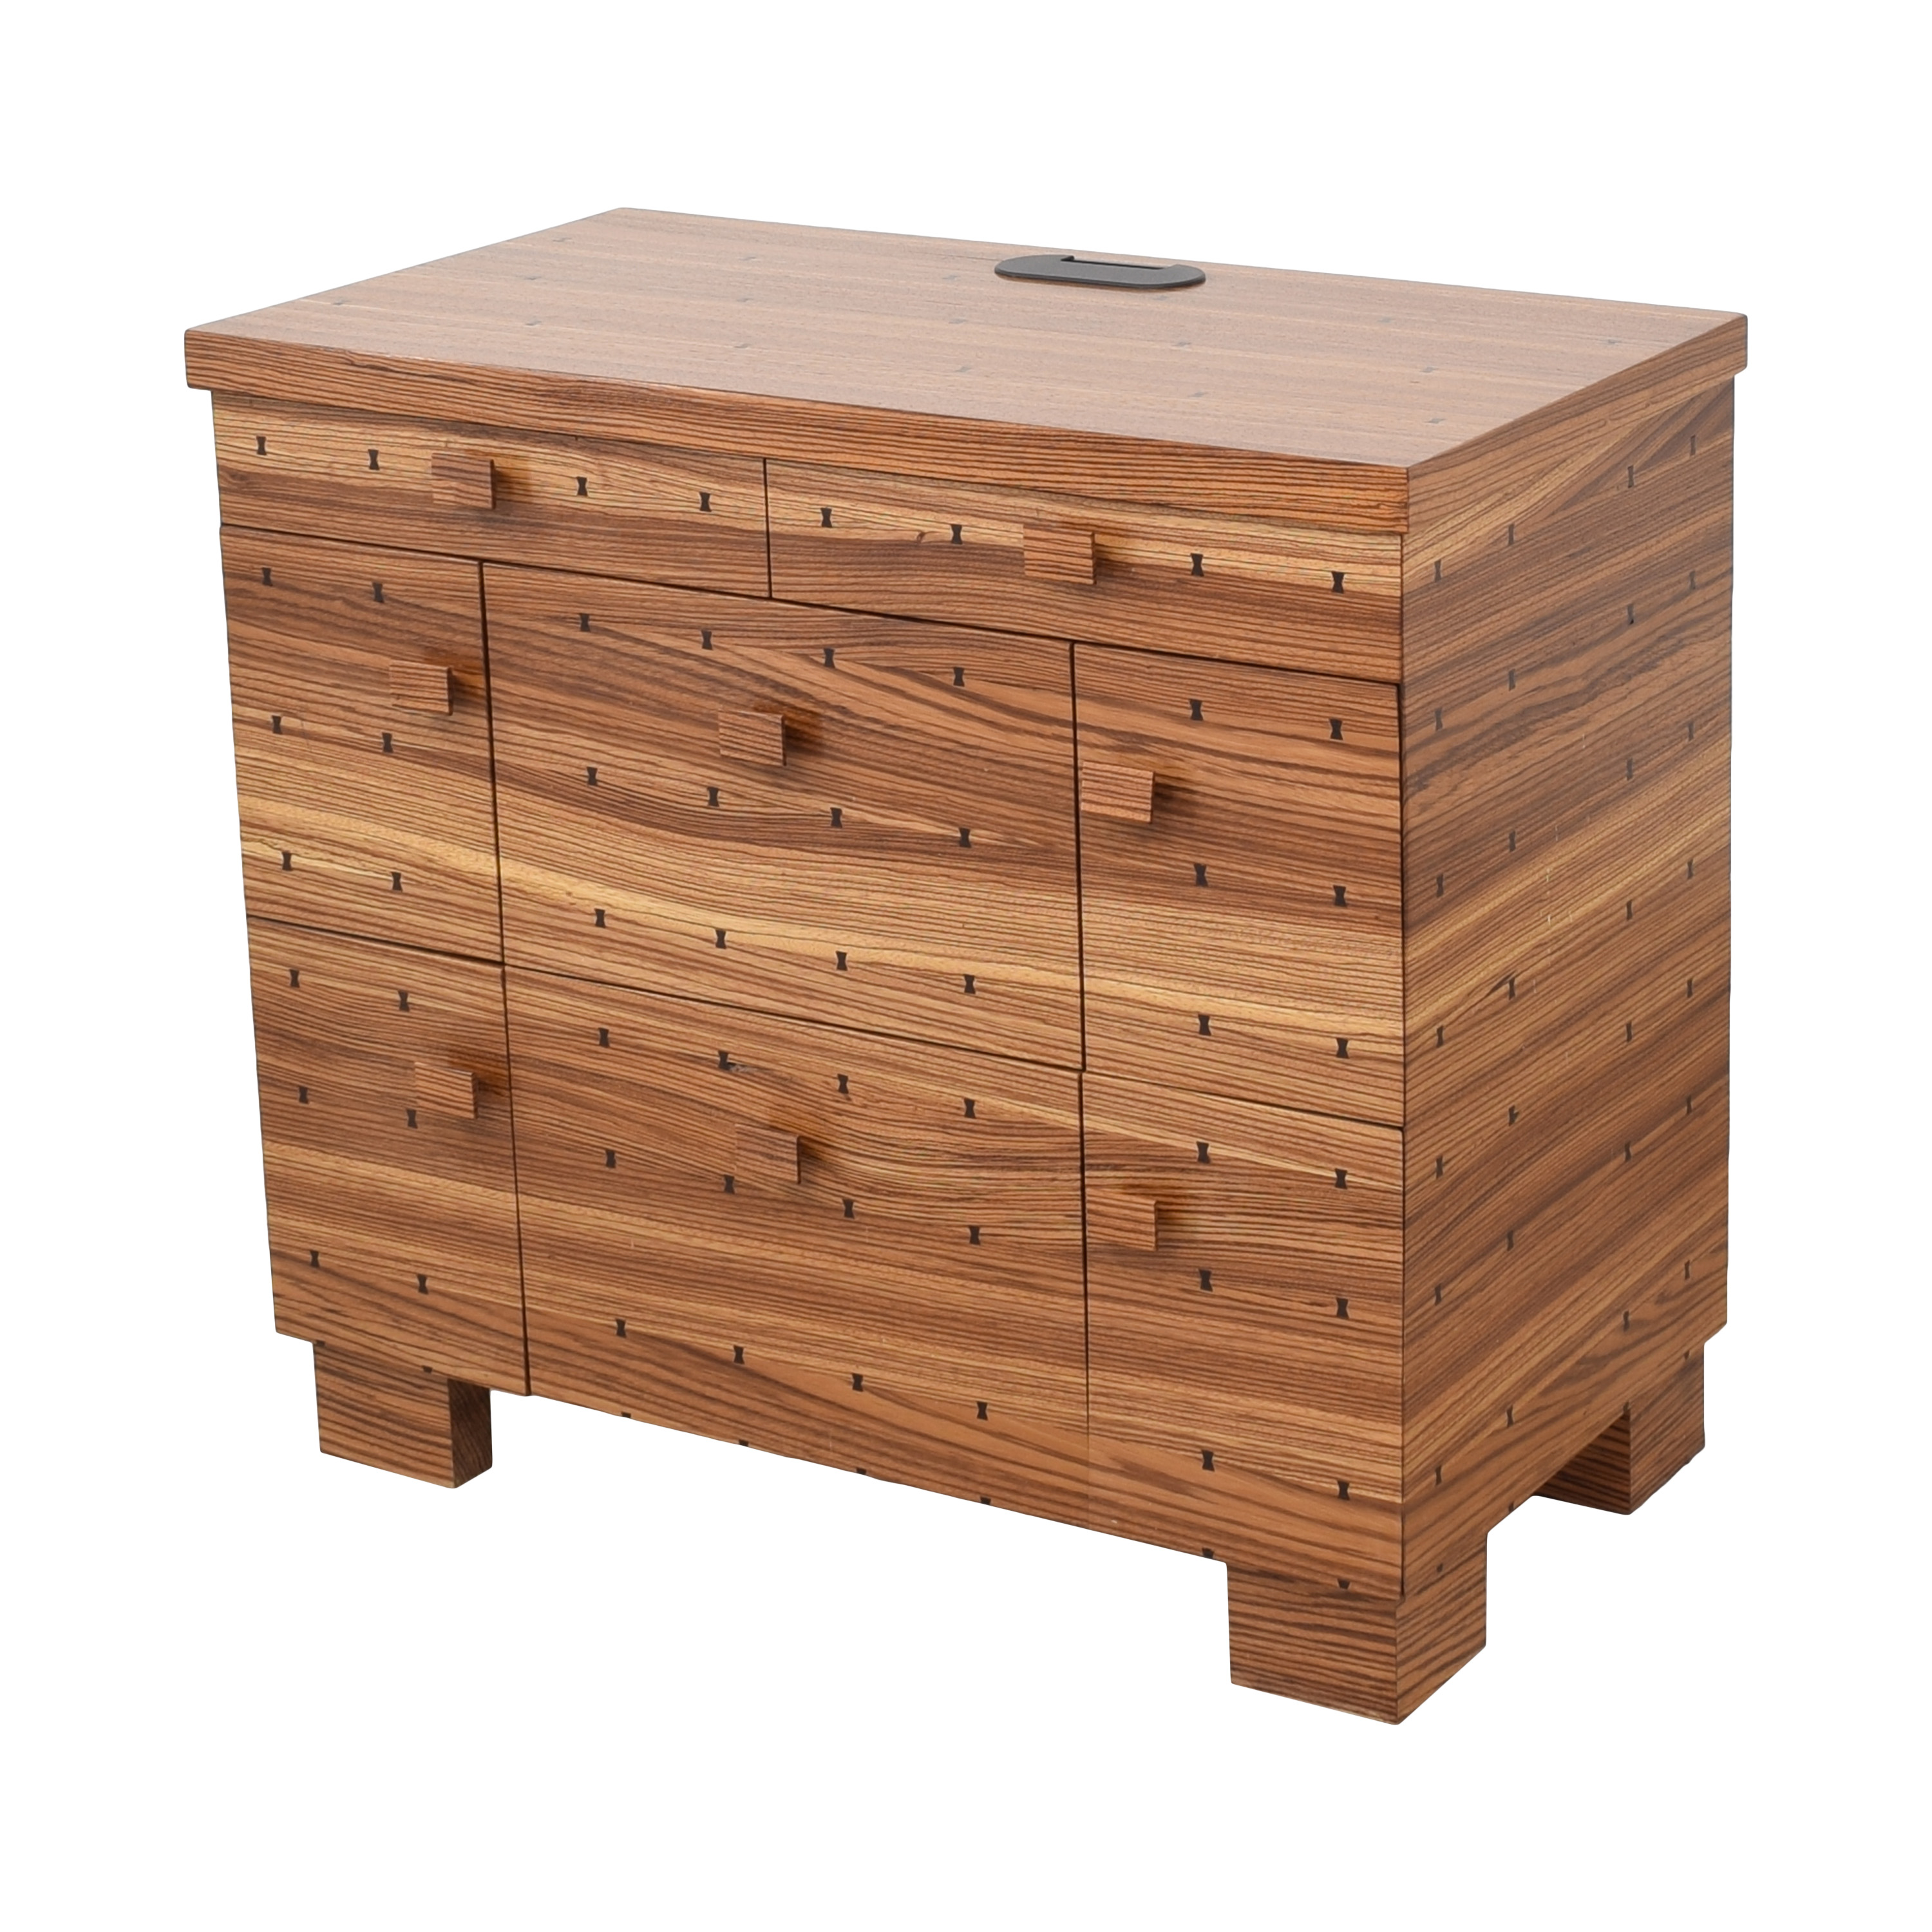 Storage Nightstand with Bowtie Inlay Design / Tables